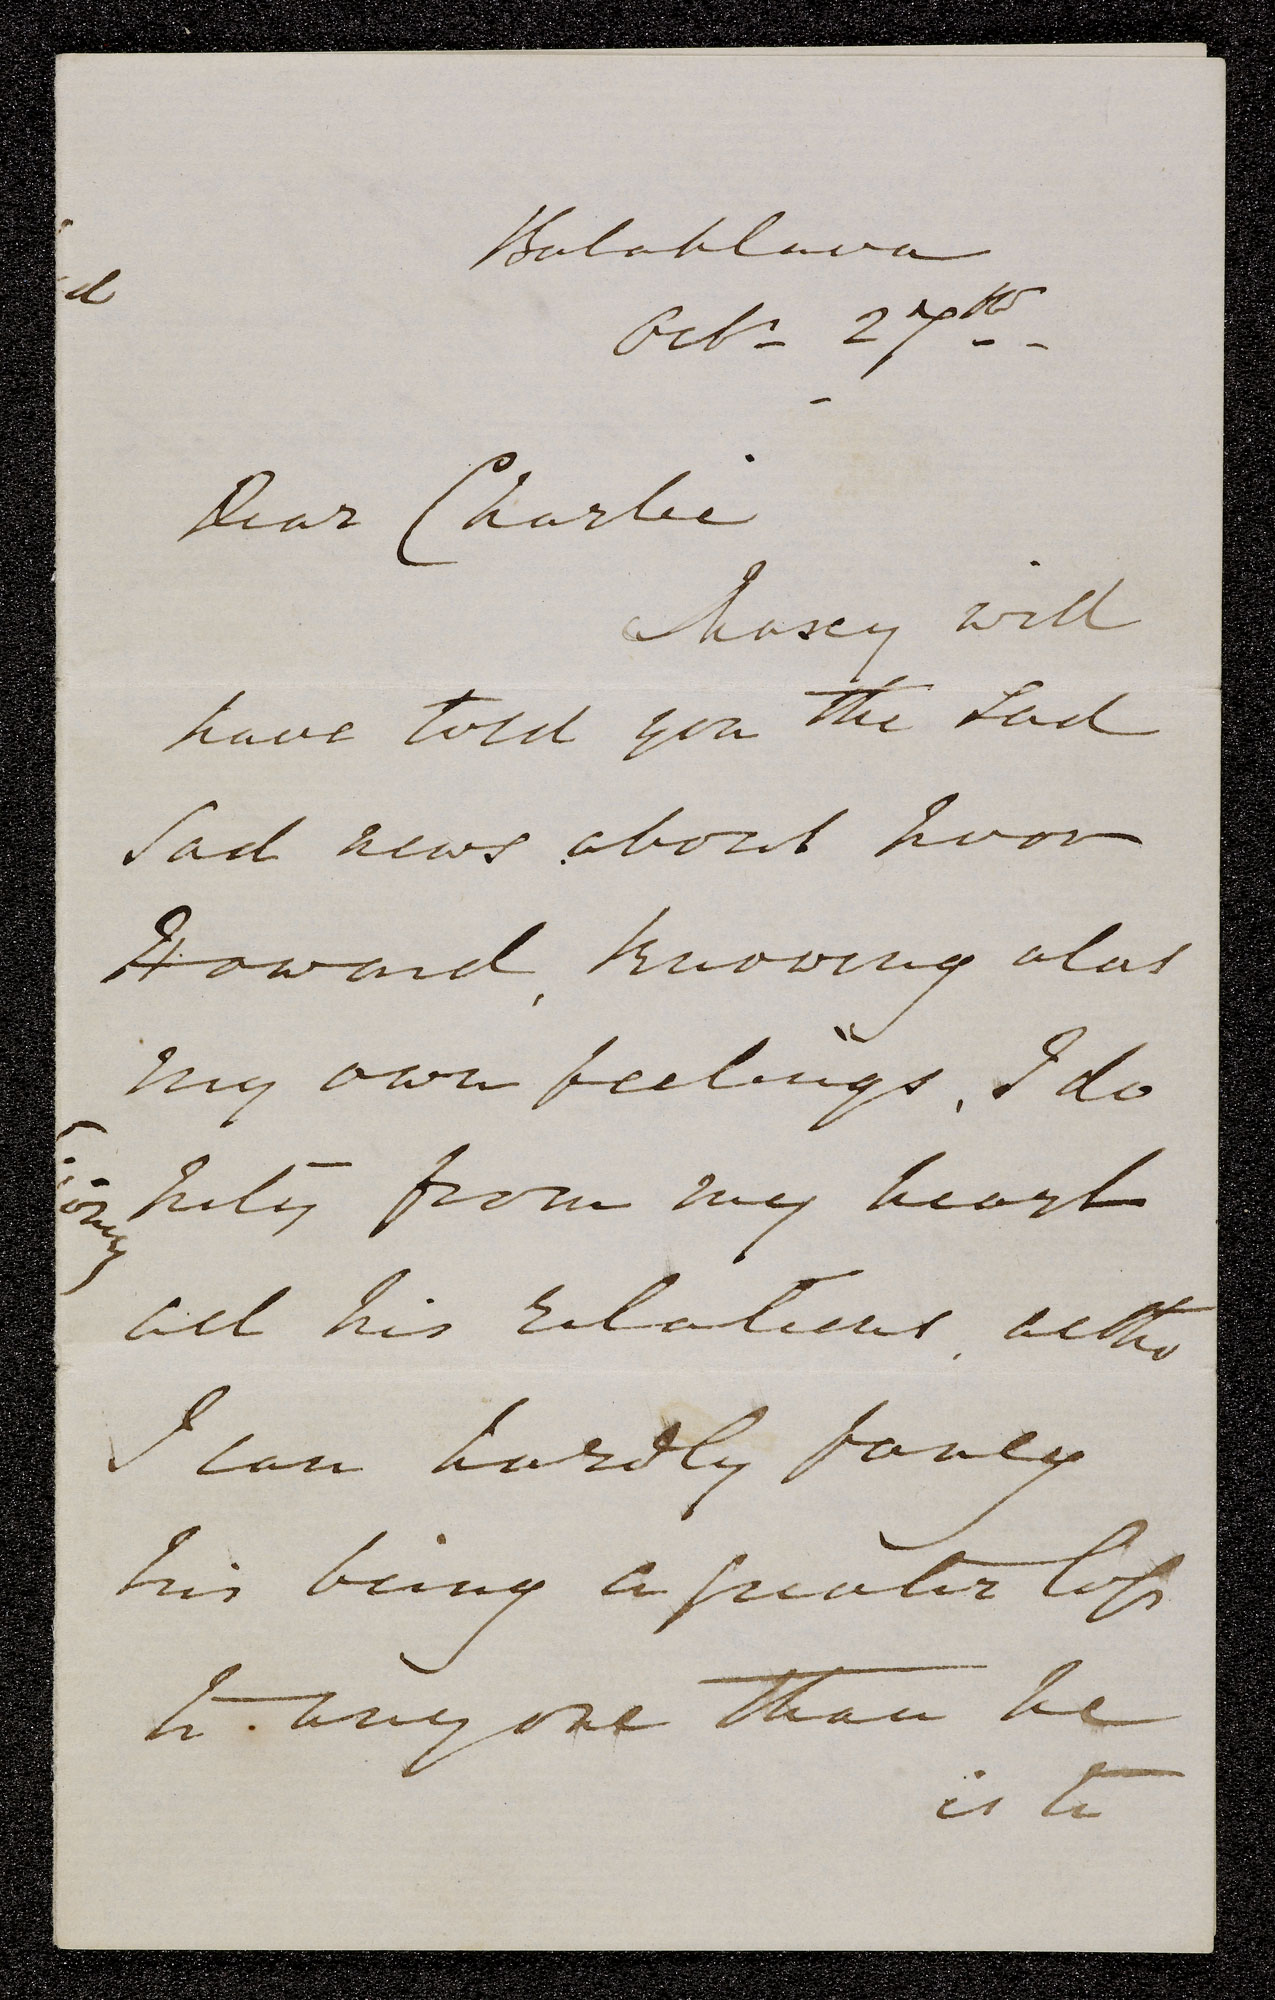 Three letters relating to the Charge of the Light Brigade [folio: 1r]